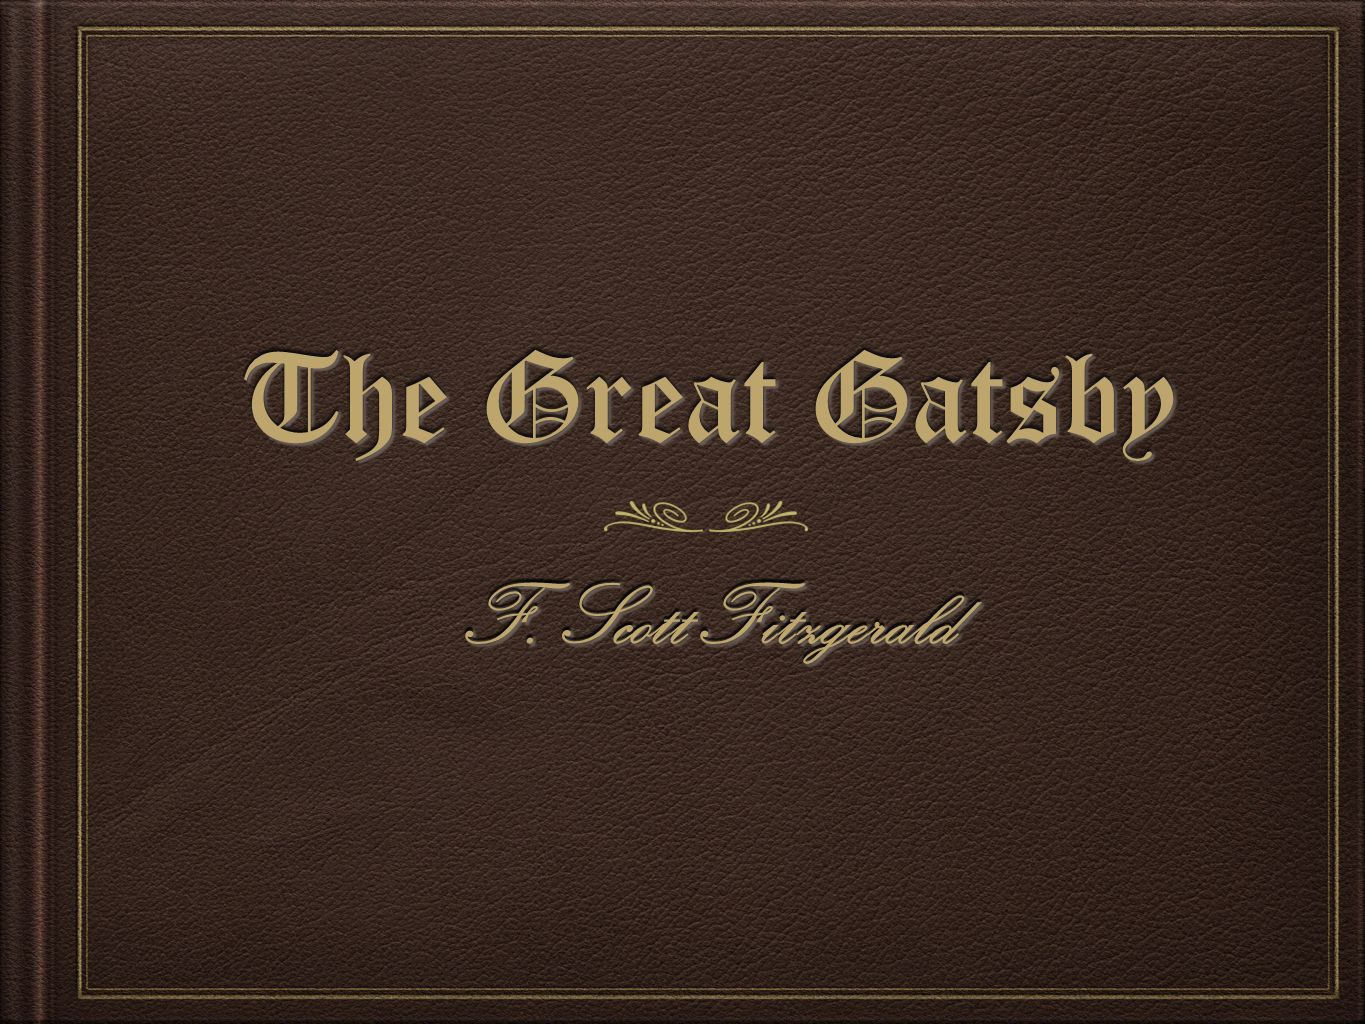 When and why does James Gatz change his name in The Great Gatsby by F. Scott Fitzgerald?